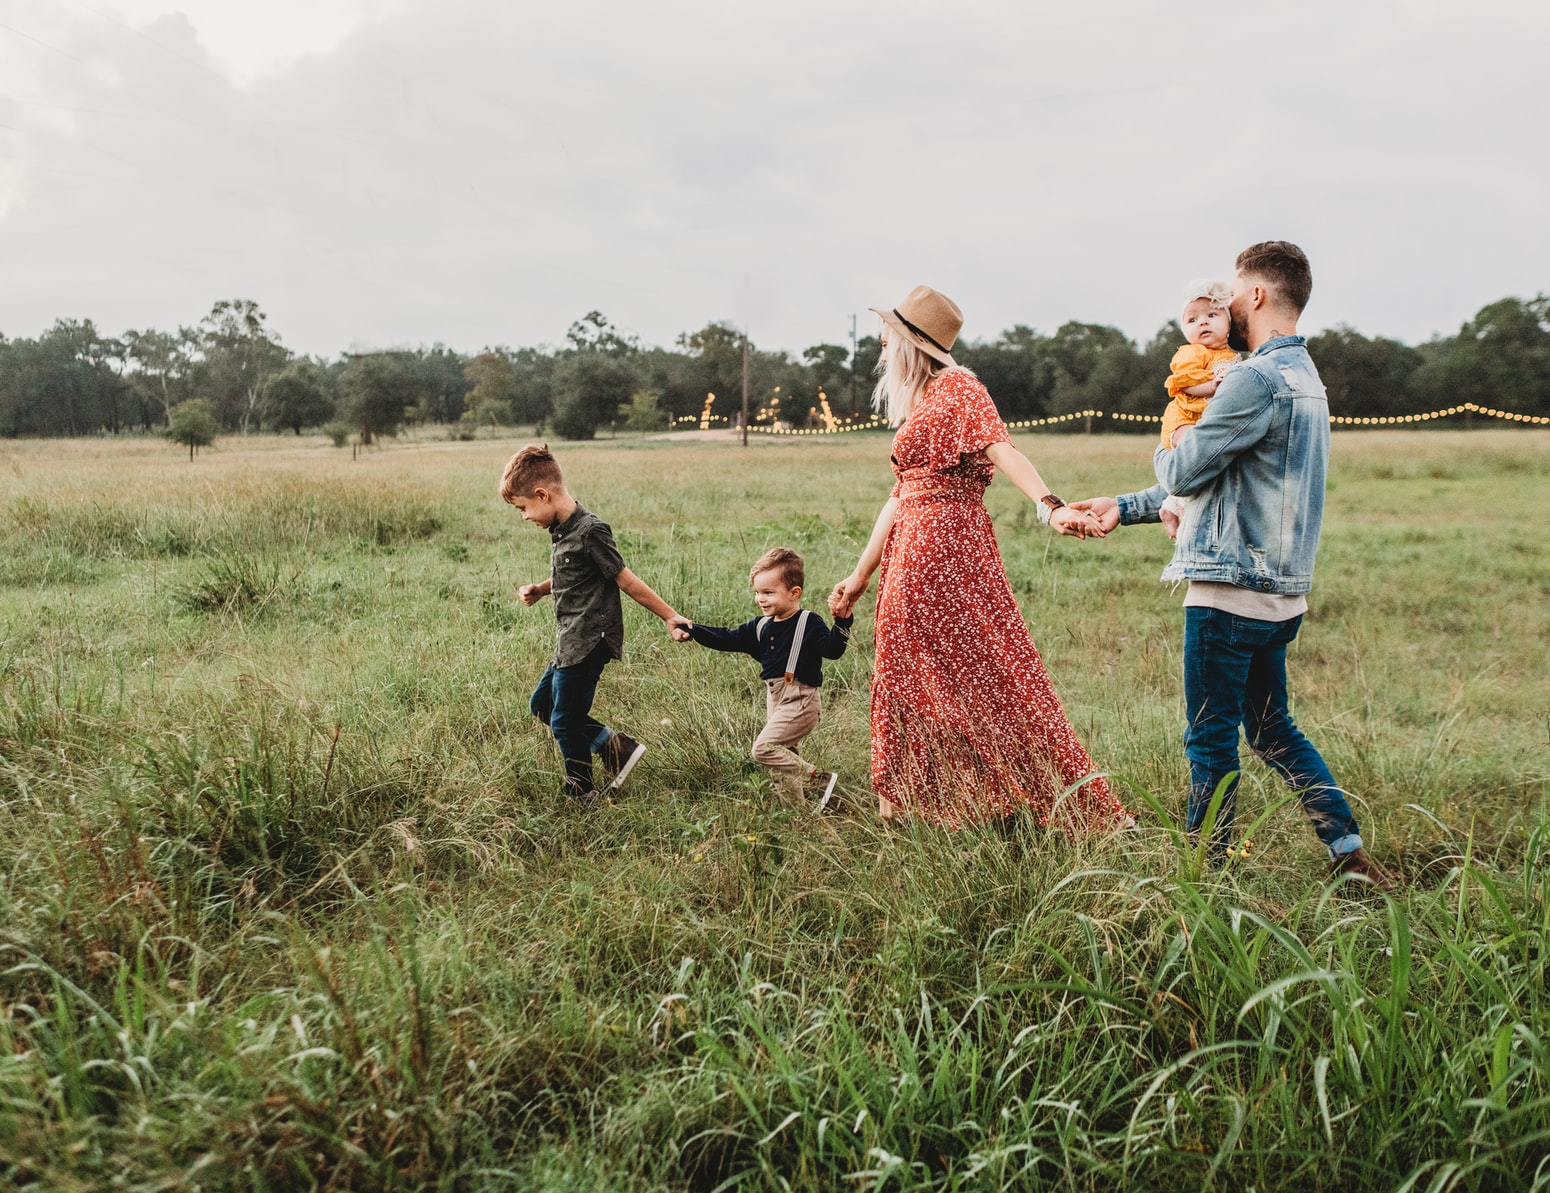 family holding hands and walking in a grassy field